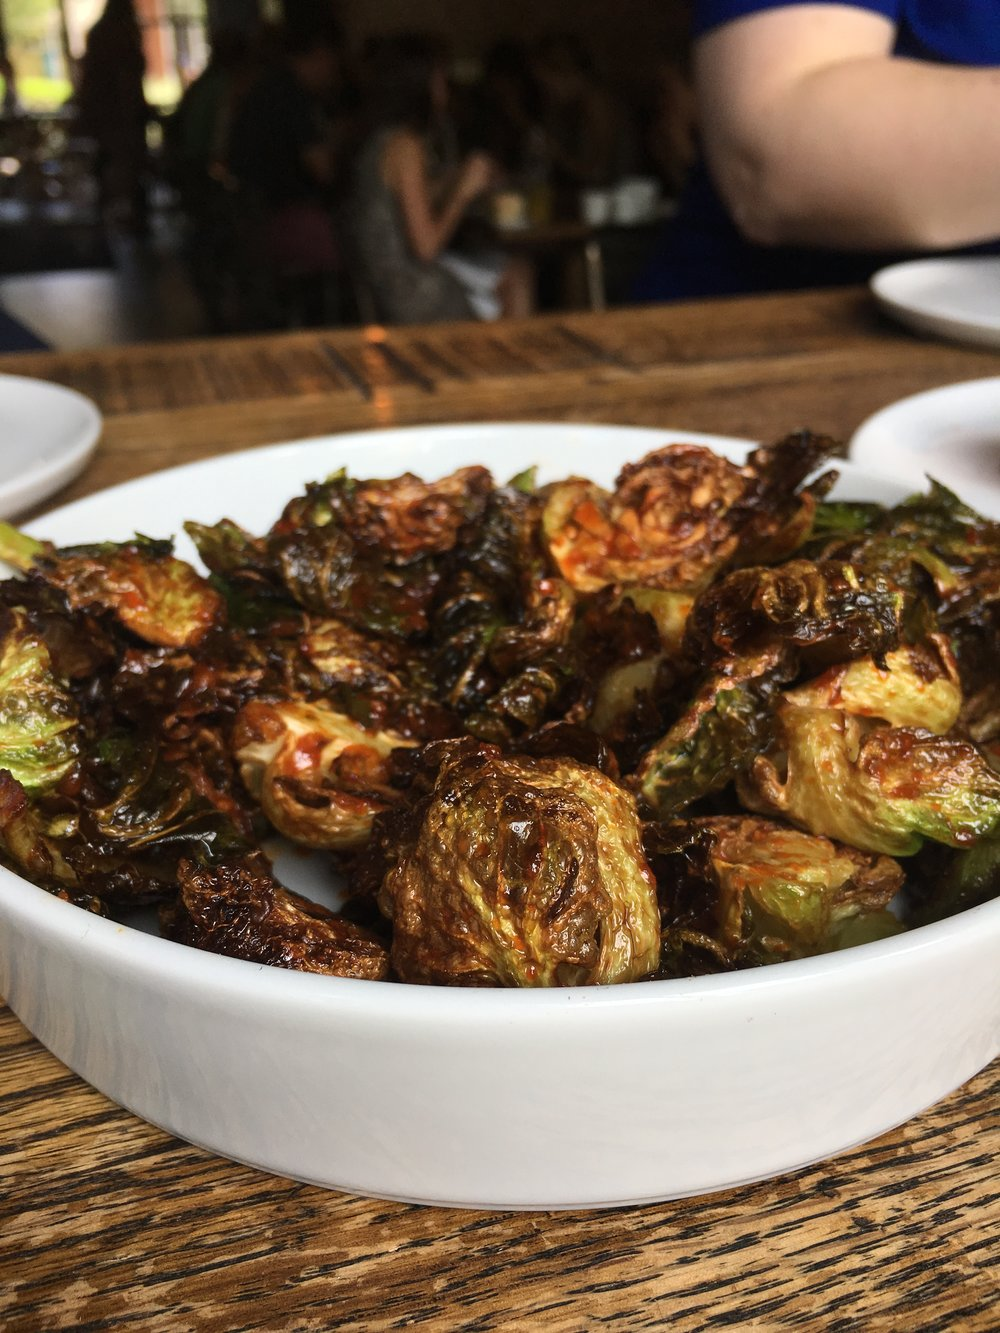 Korean Brussels Sprouts - Fried brussels sprouts, gochujang vinaigretteAnother solid staple. We've never been let down by these bad boys.